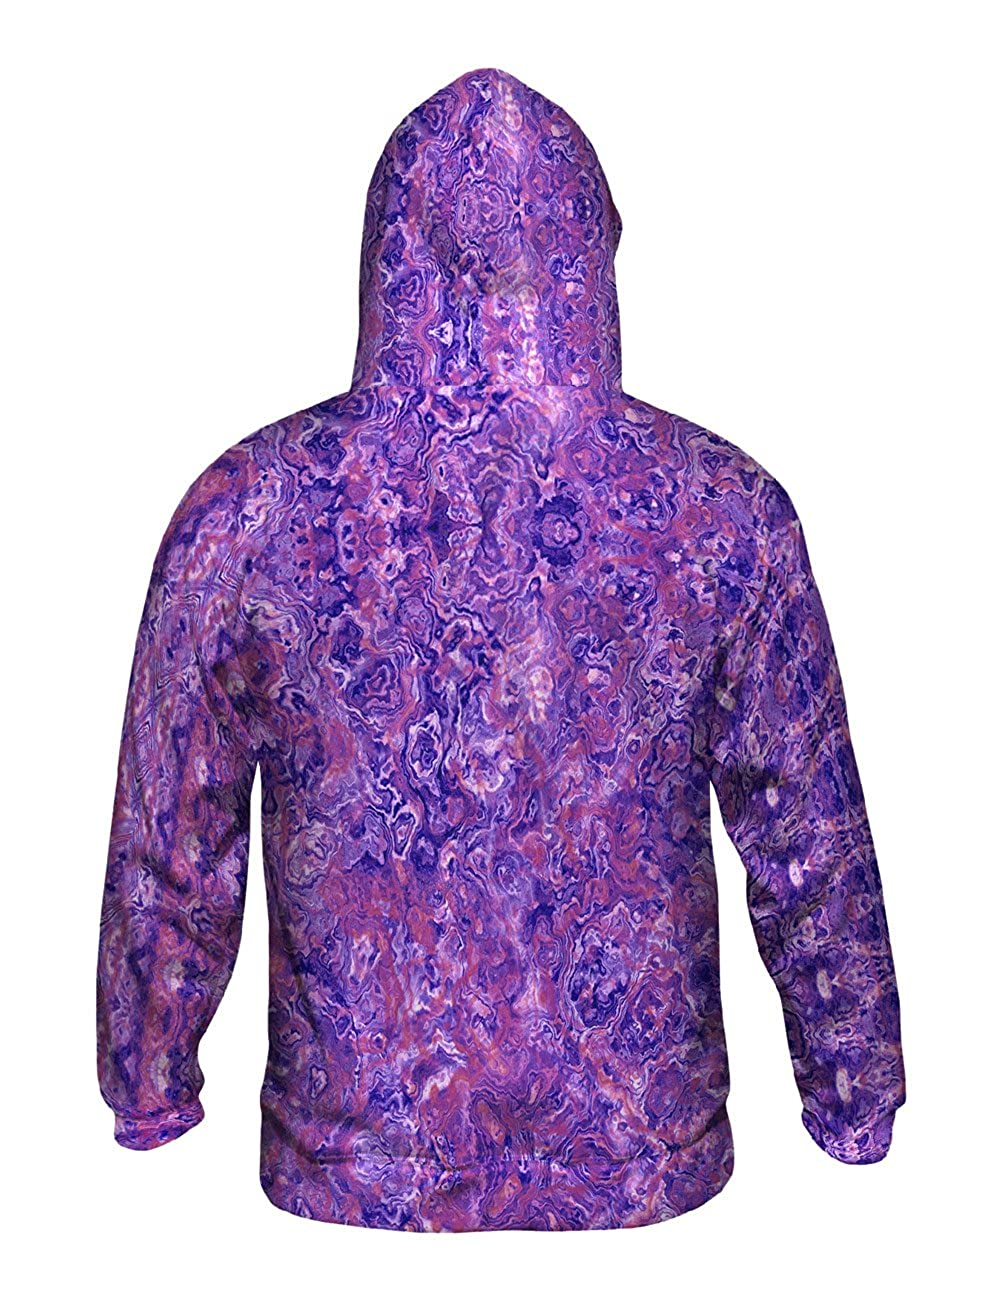 9a50c393 Amazon.com: Yizzam- Purple Marble -Allover Print - Mens Hoodie Sweater:  Clothing